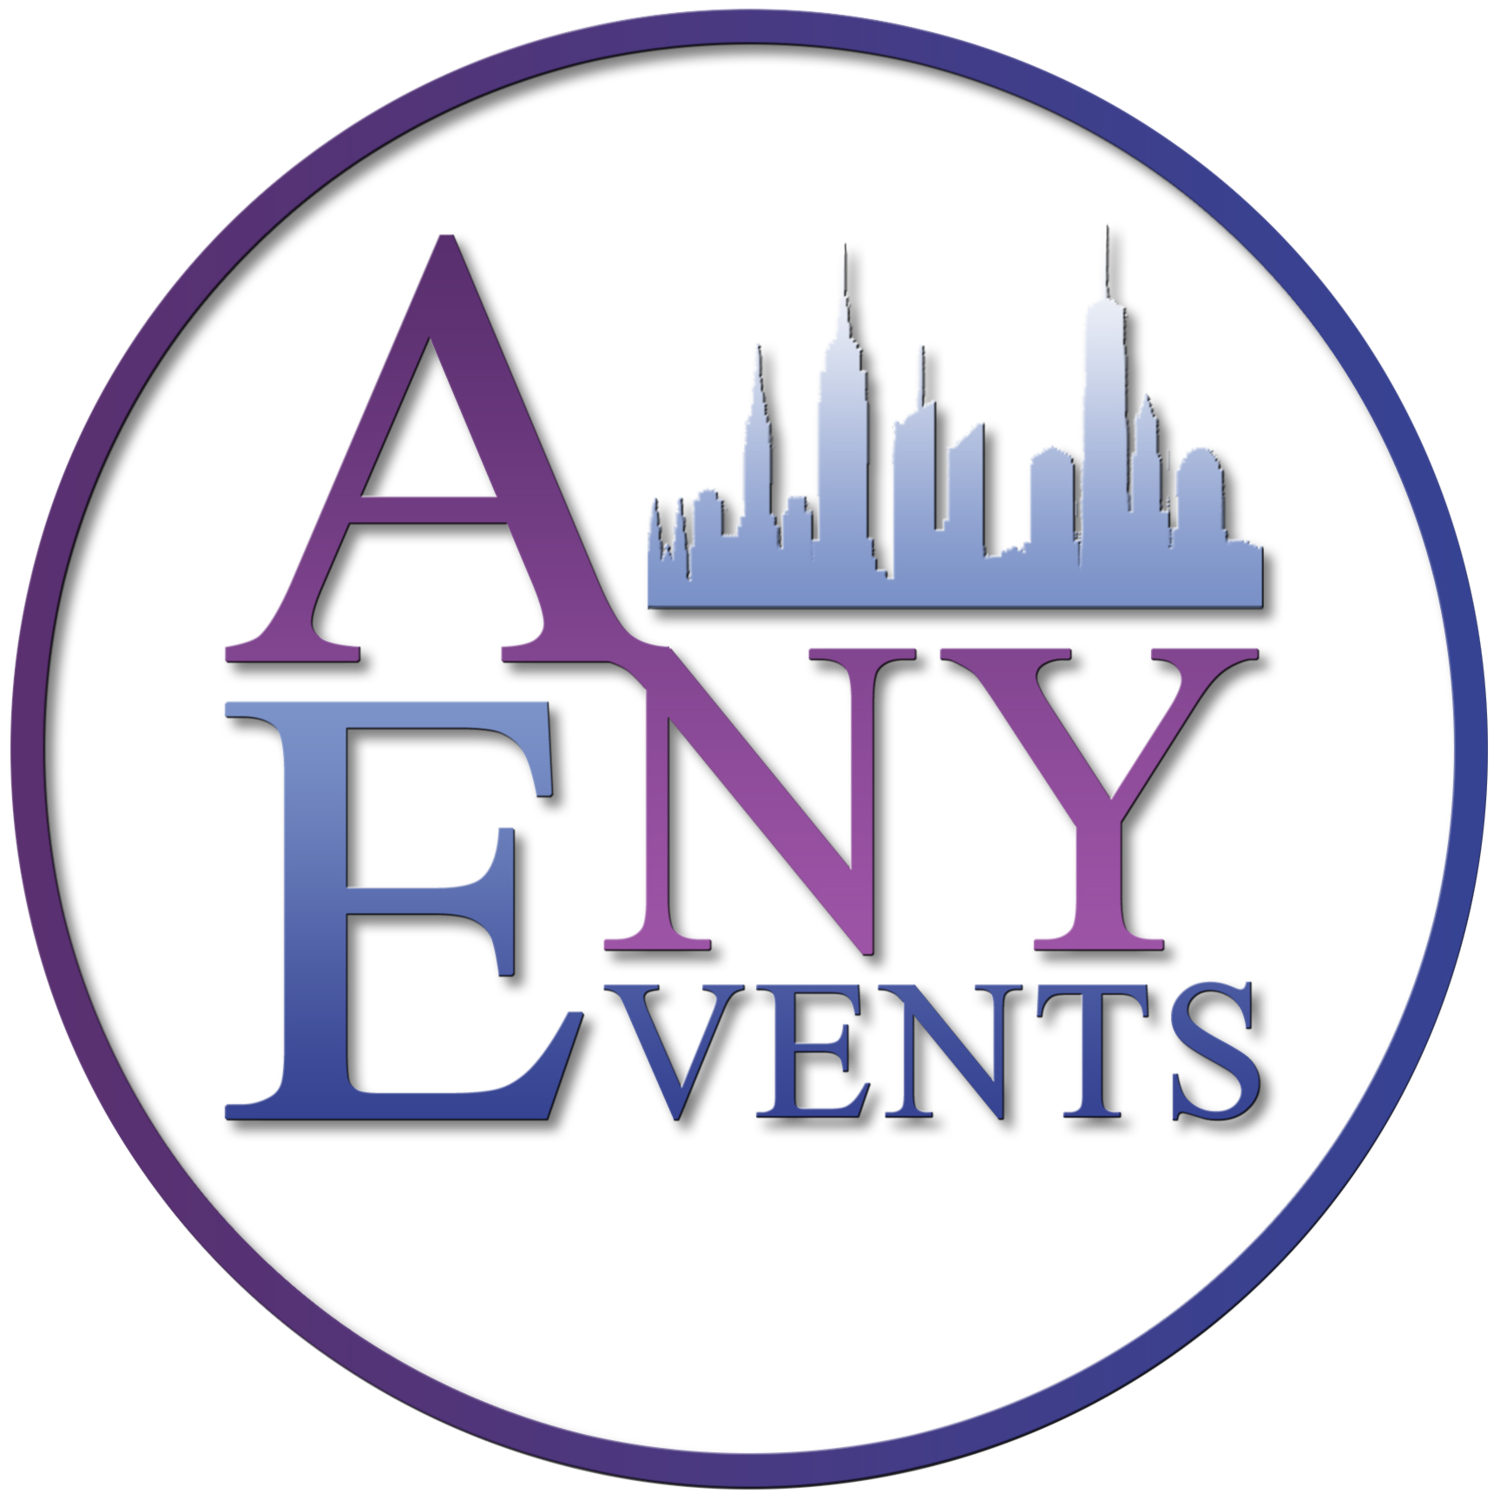 Any Events LLC